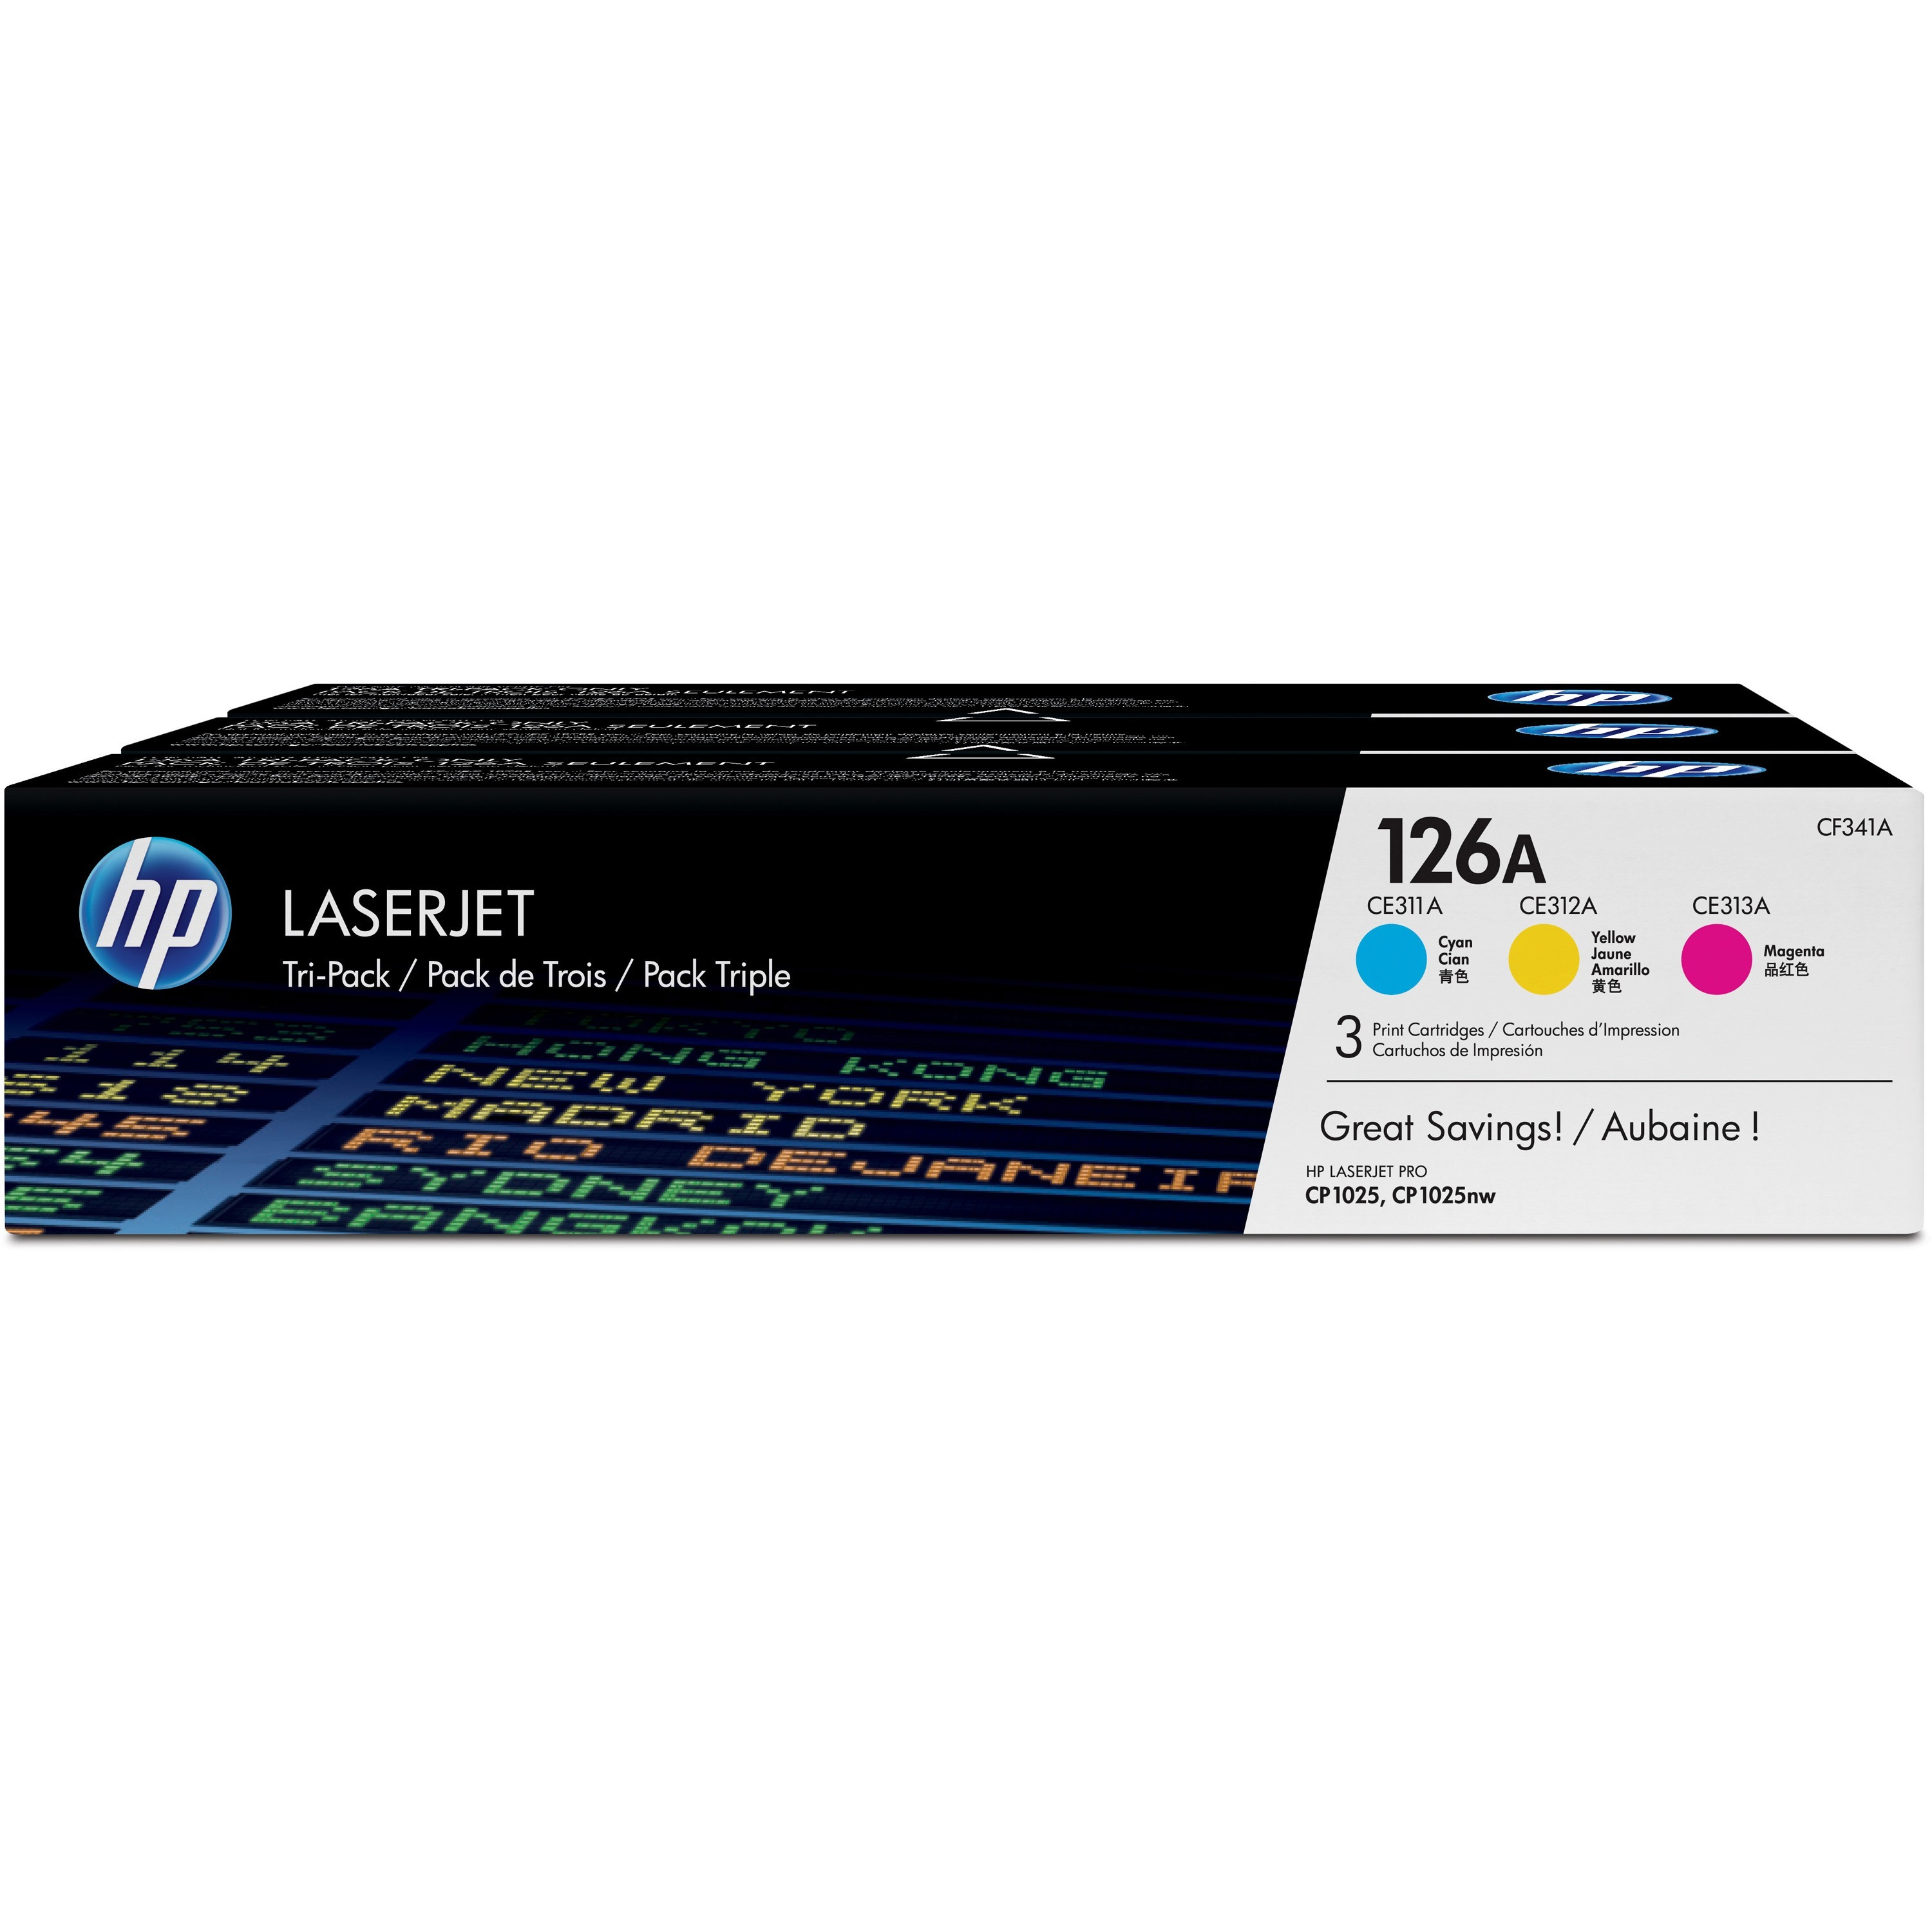 HP 126A (CF341A) Cyan/Magenta/Yellow Original LJ Toner Cartridges, 3 pack